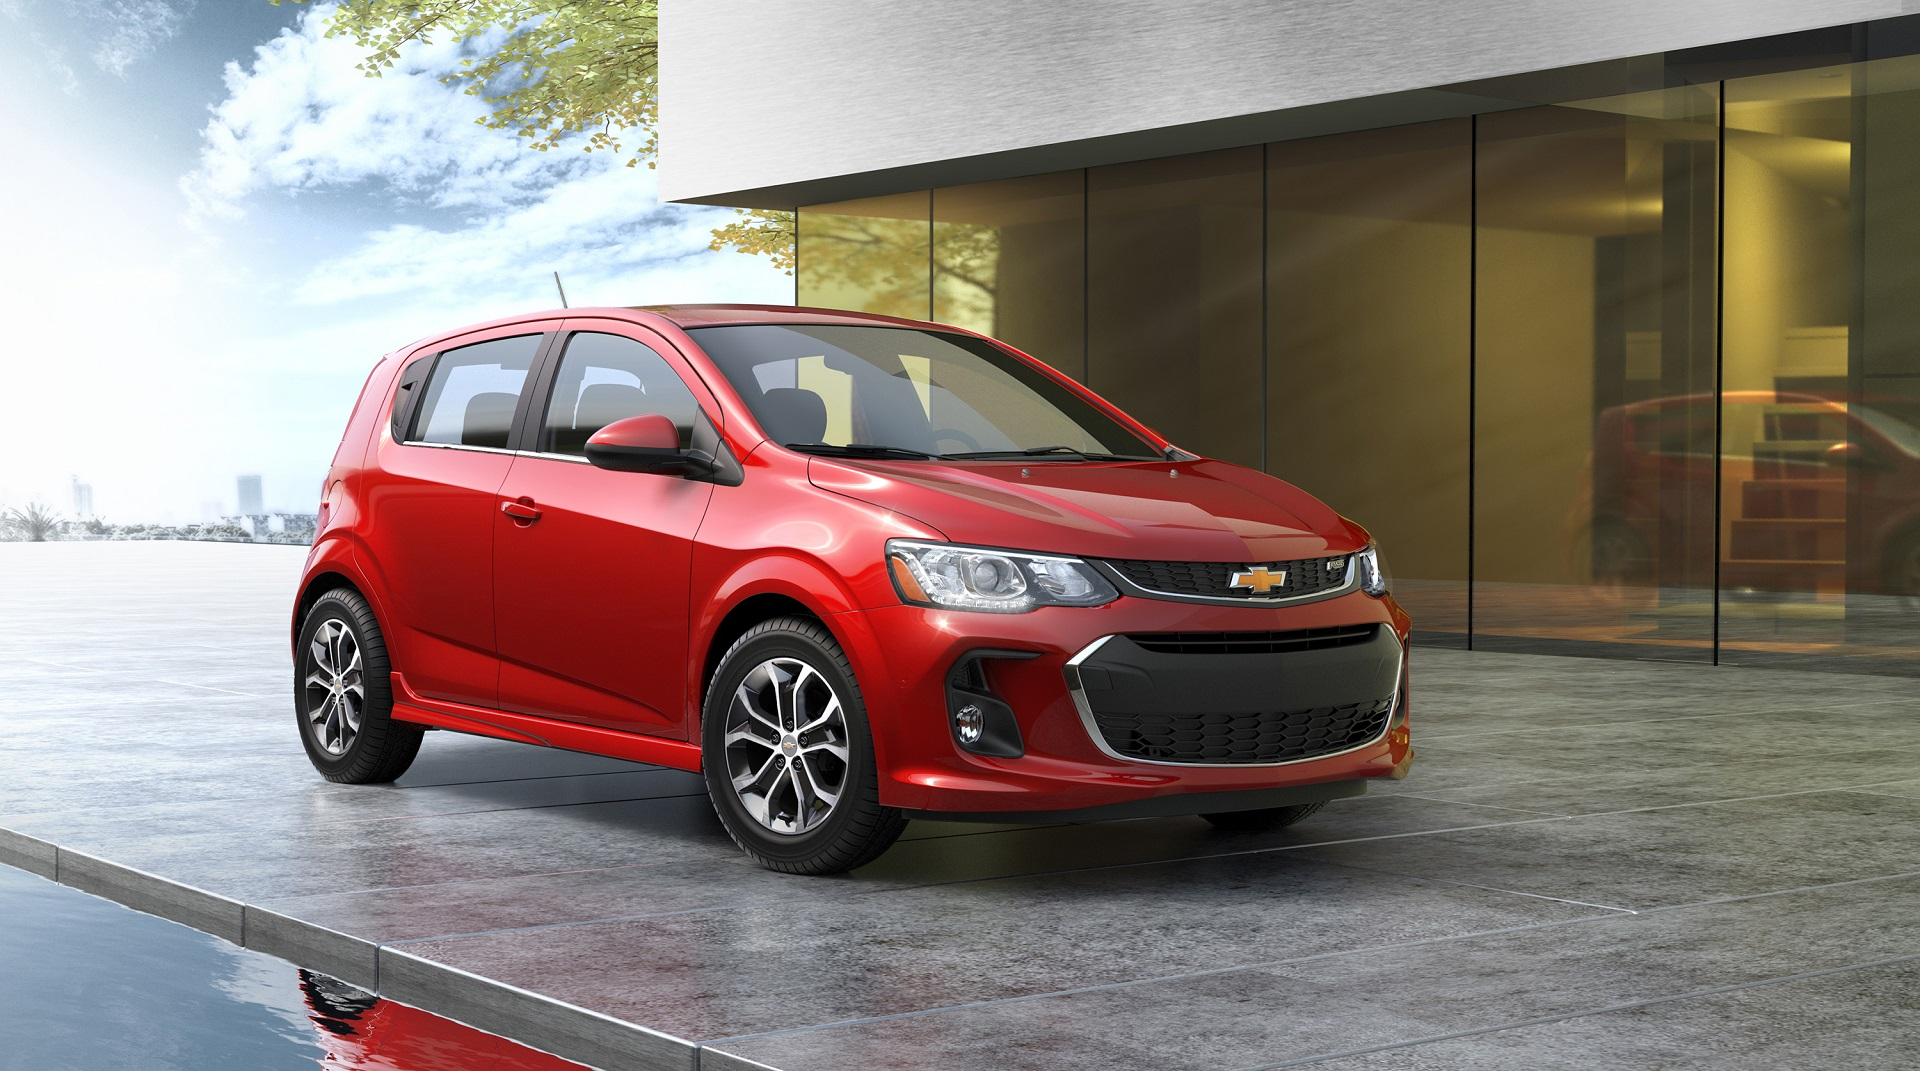 Chevrolet Sonic Owners Manual: Off-Road Recovery